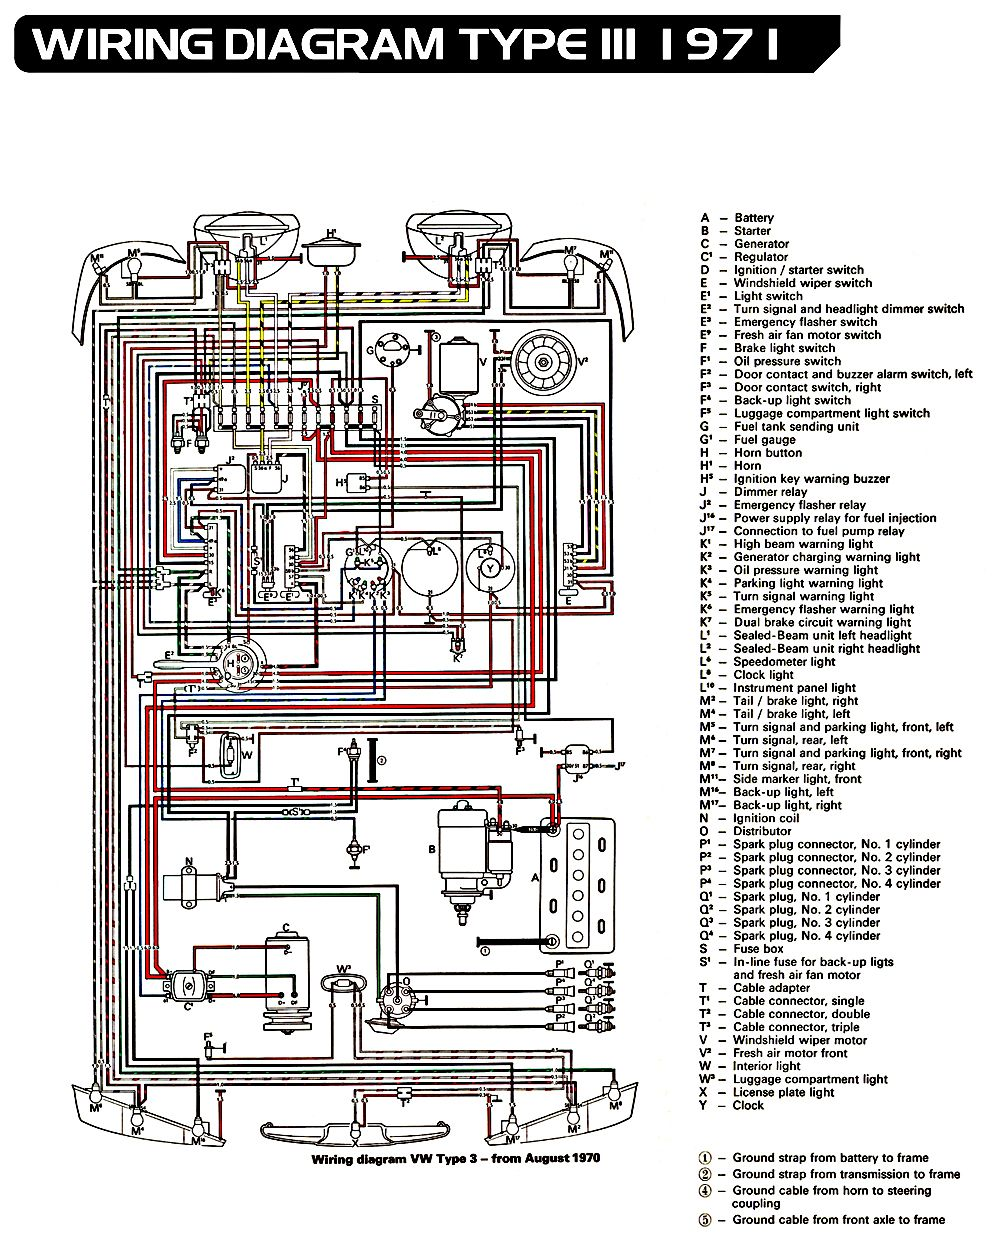 hight resolution of 1971 type 3 vw wiring diagram so simple compared to a modern ecu rh pinterest com